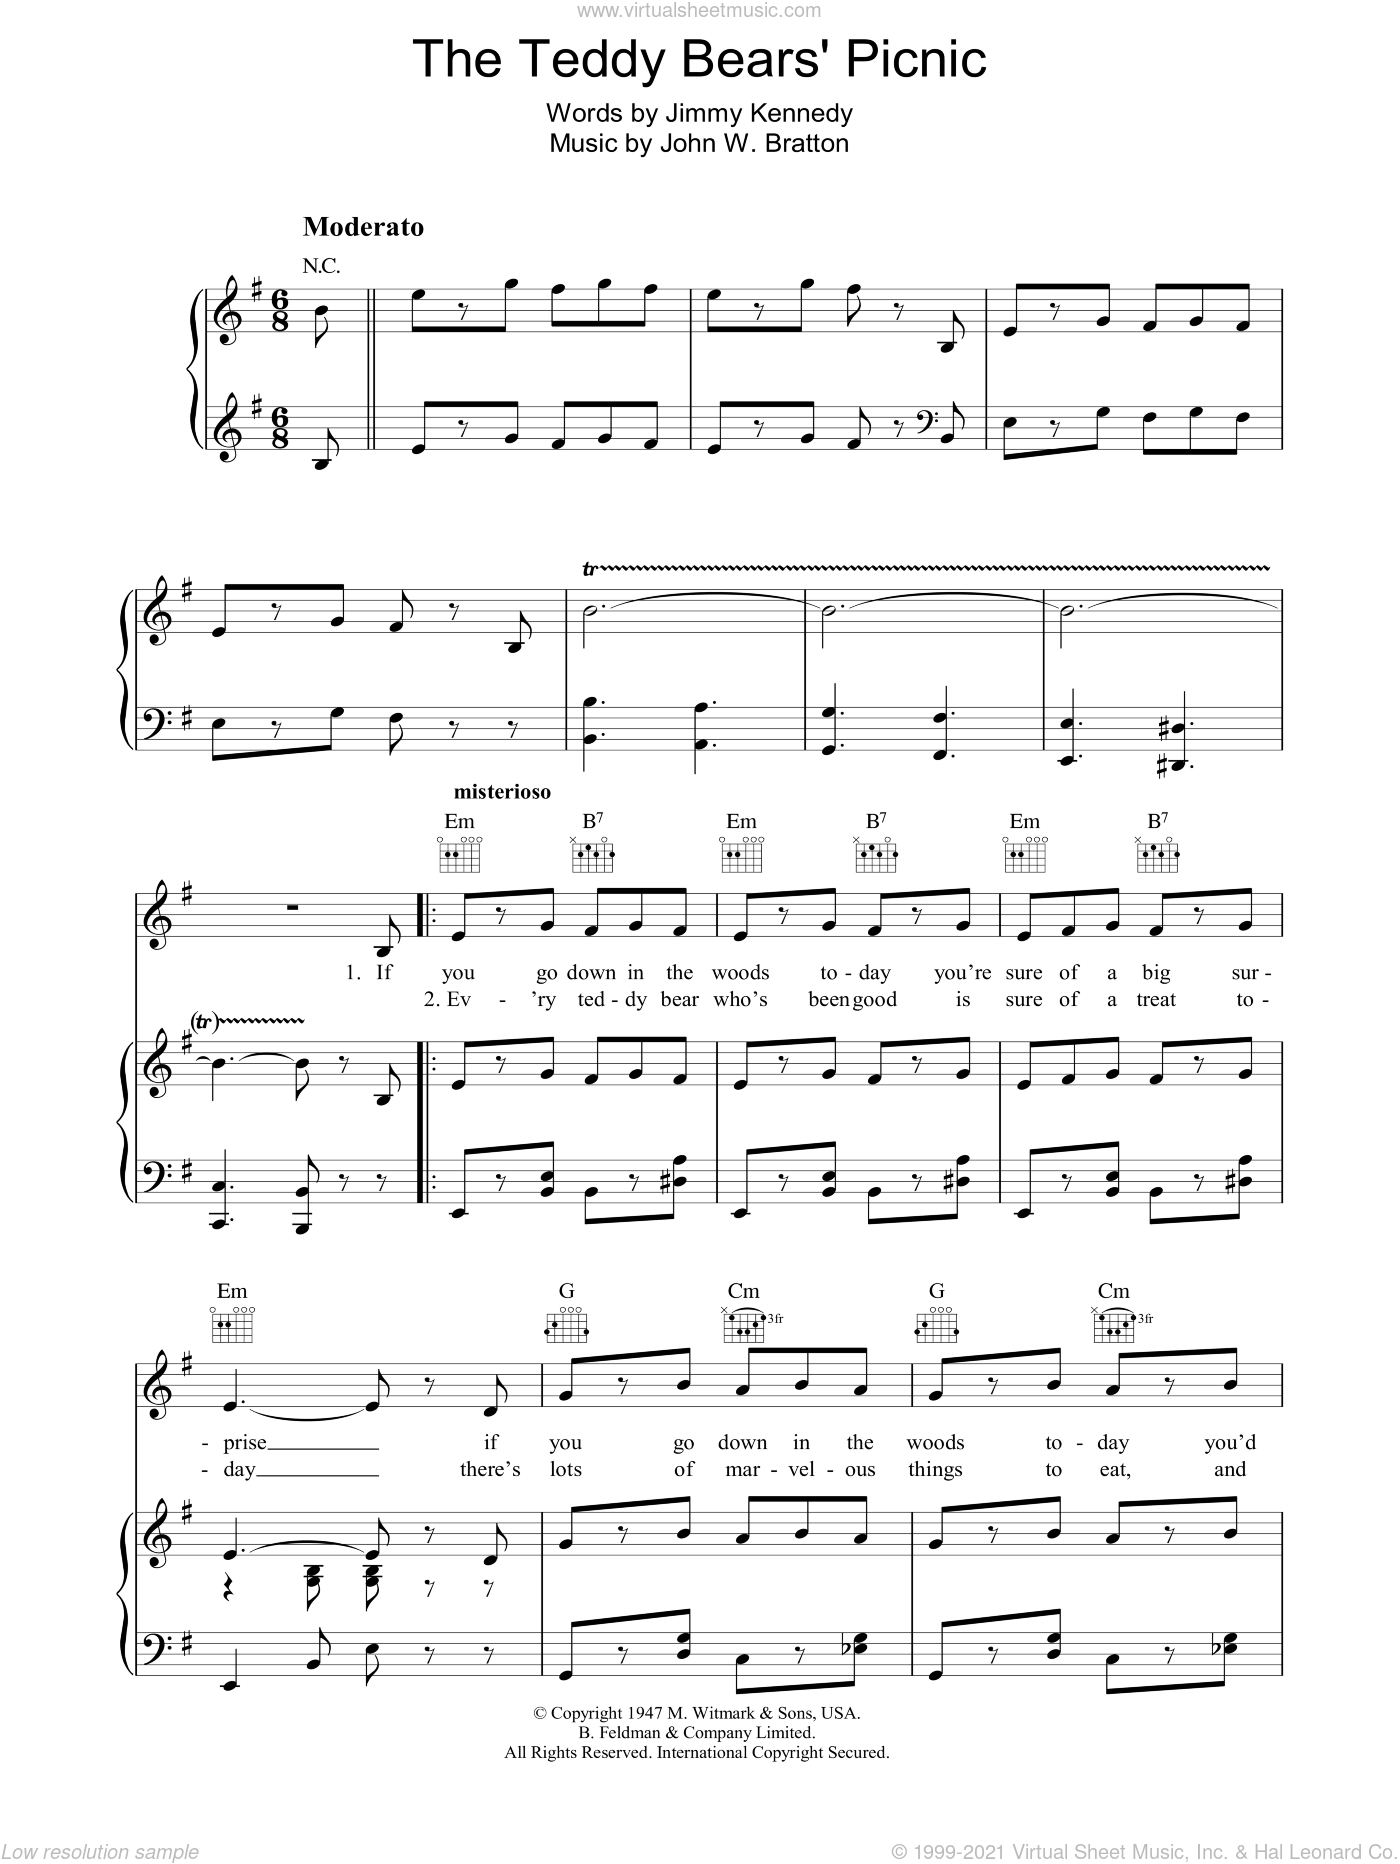 The Teddy Bears' Picnic sheet music for voice, piano or guitar by Jimmy Kennedy and John Bratton, intermediate voice, piano or guitar. Score Image Preview.